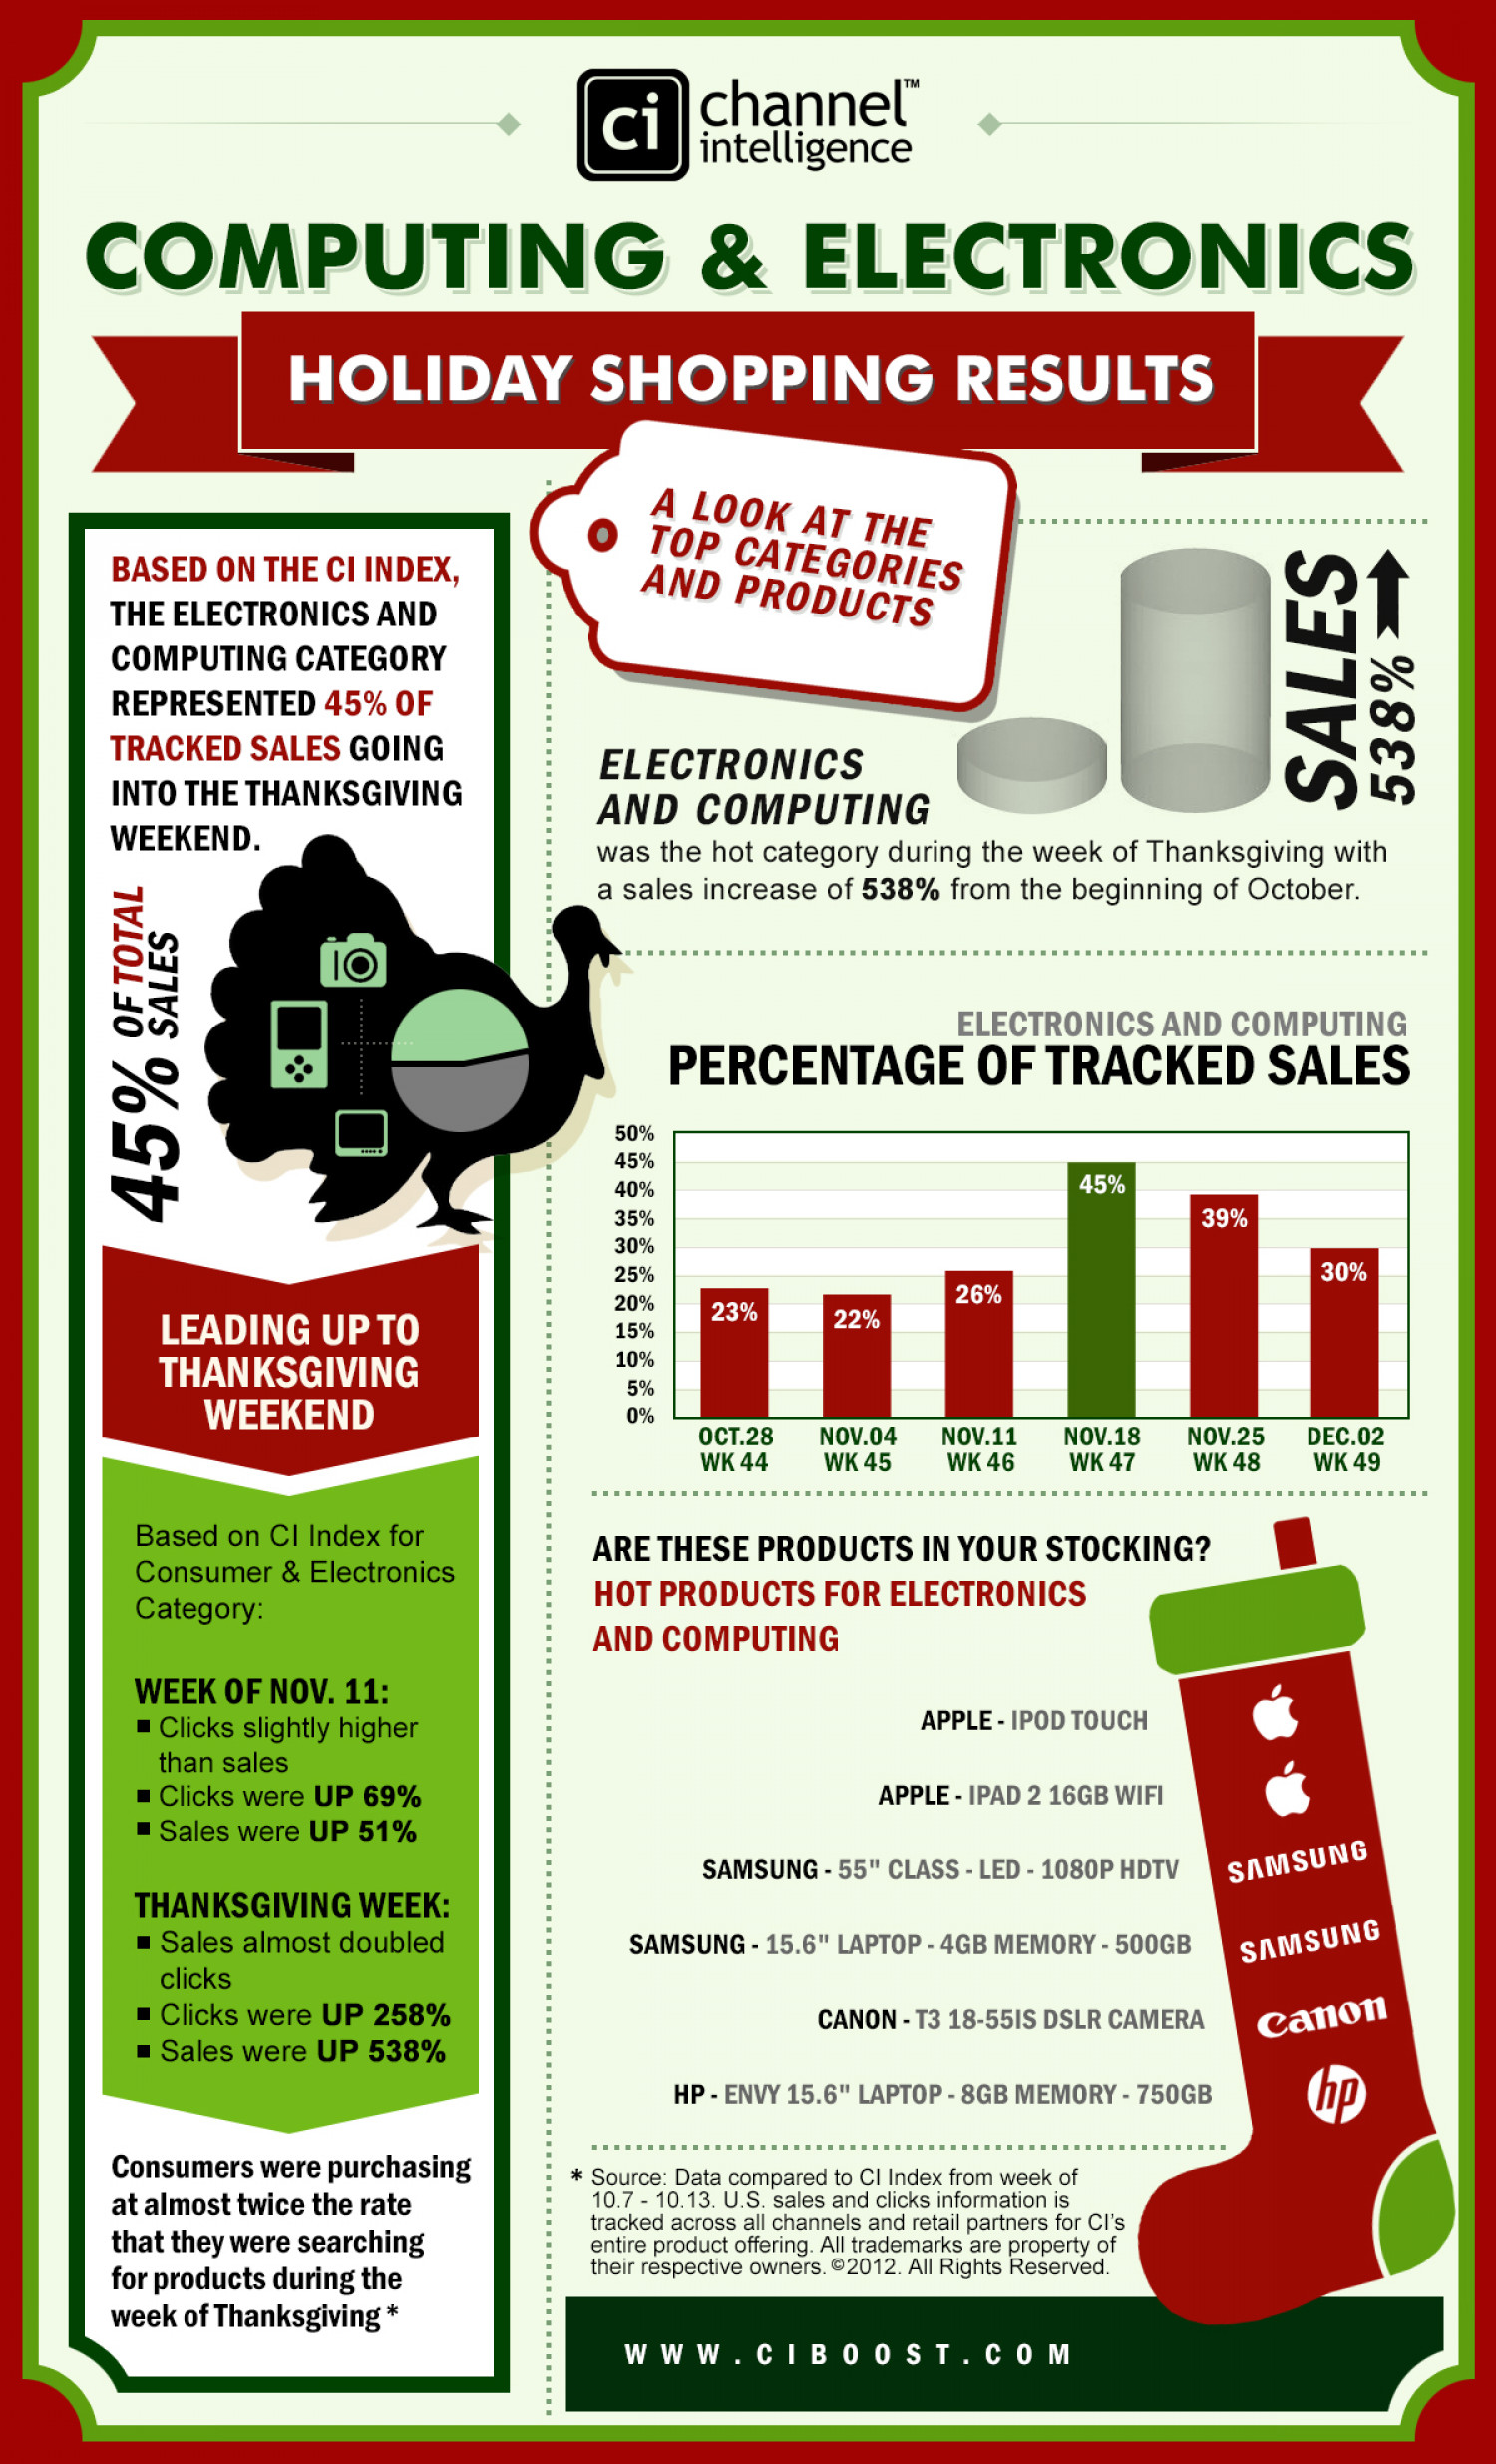 Computing & Electronics Holiday Shopping Results Infographic